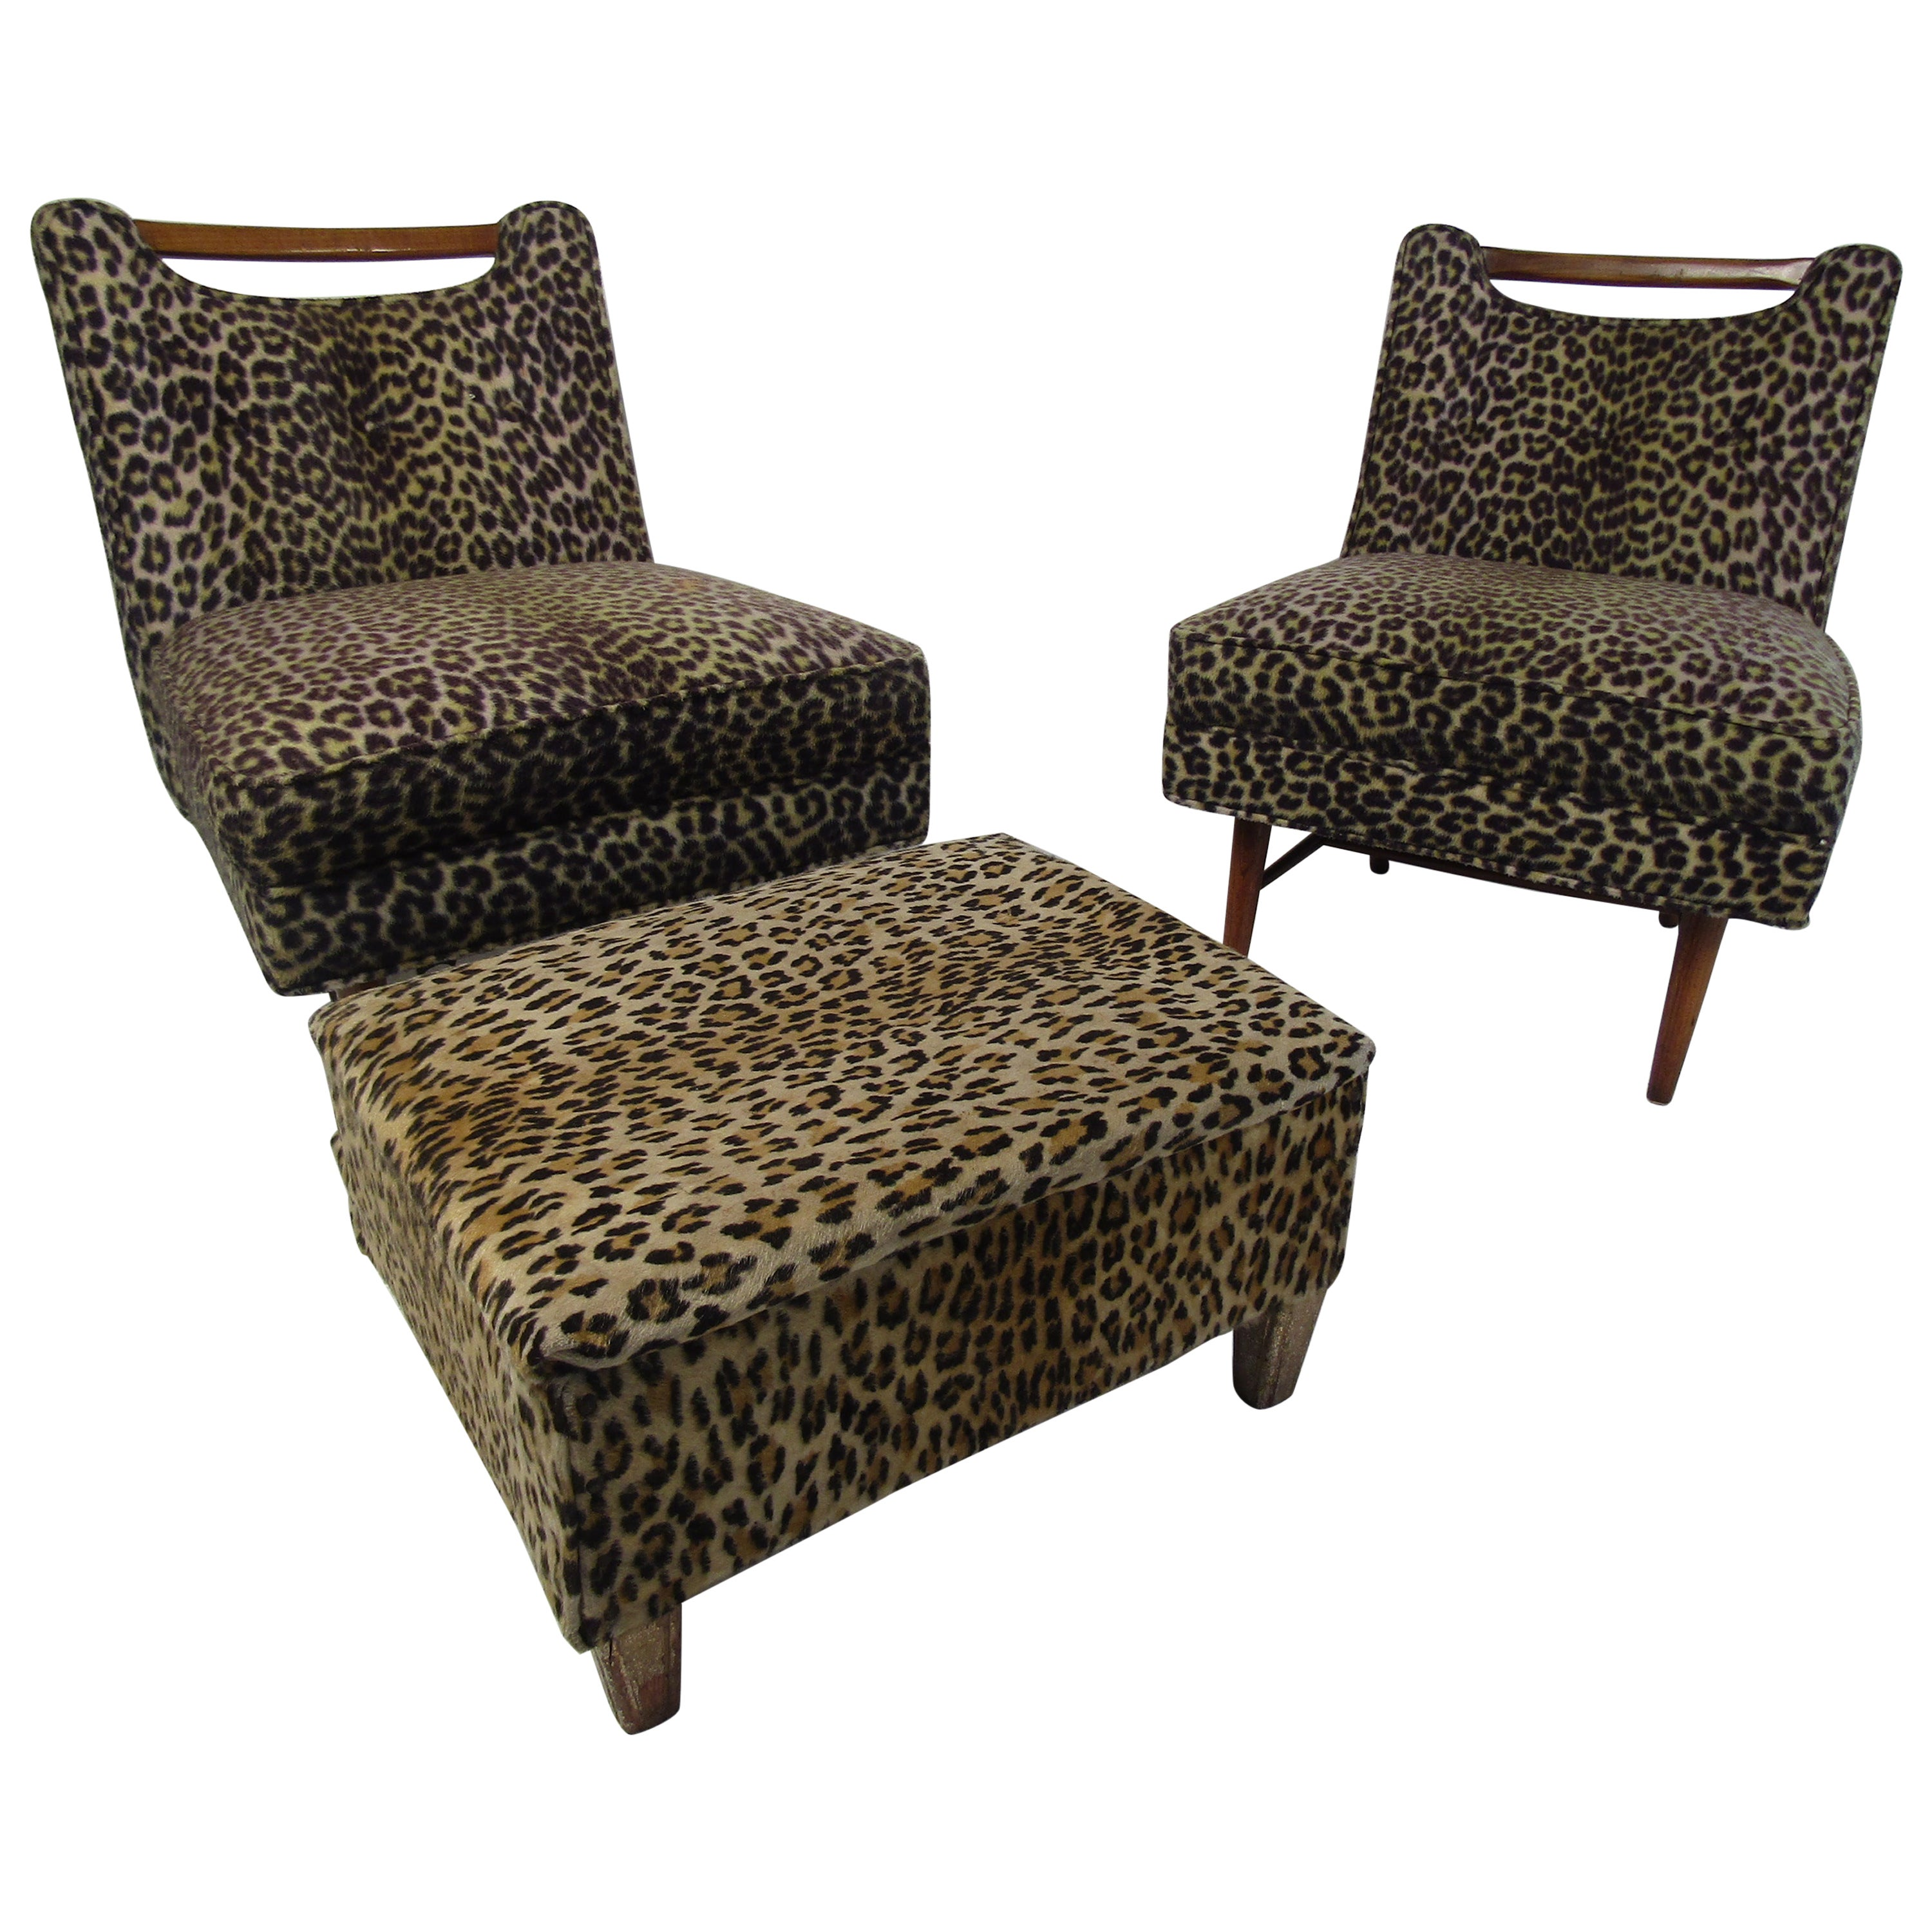 Pair of Midcentury Leopard Print Lounge Chairs with Ottoman